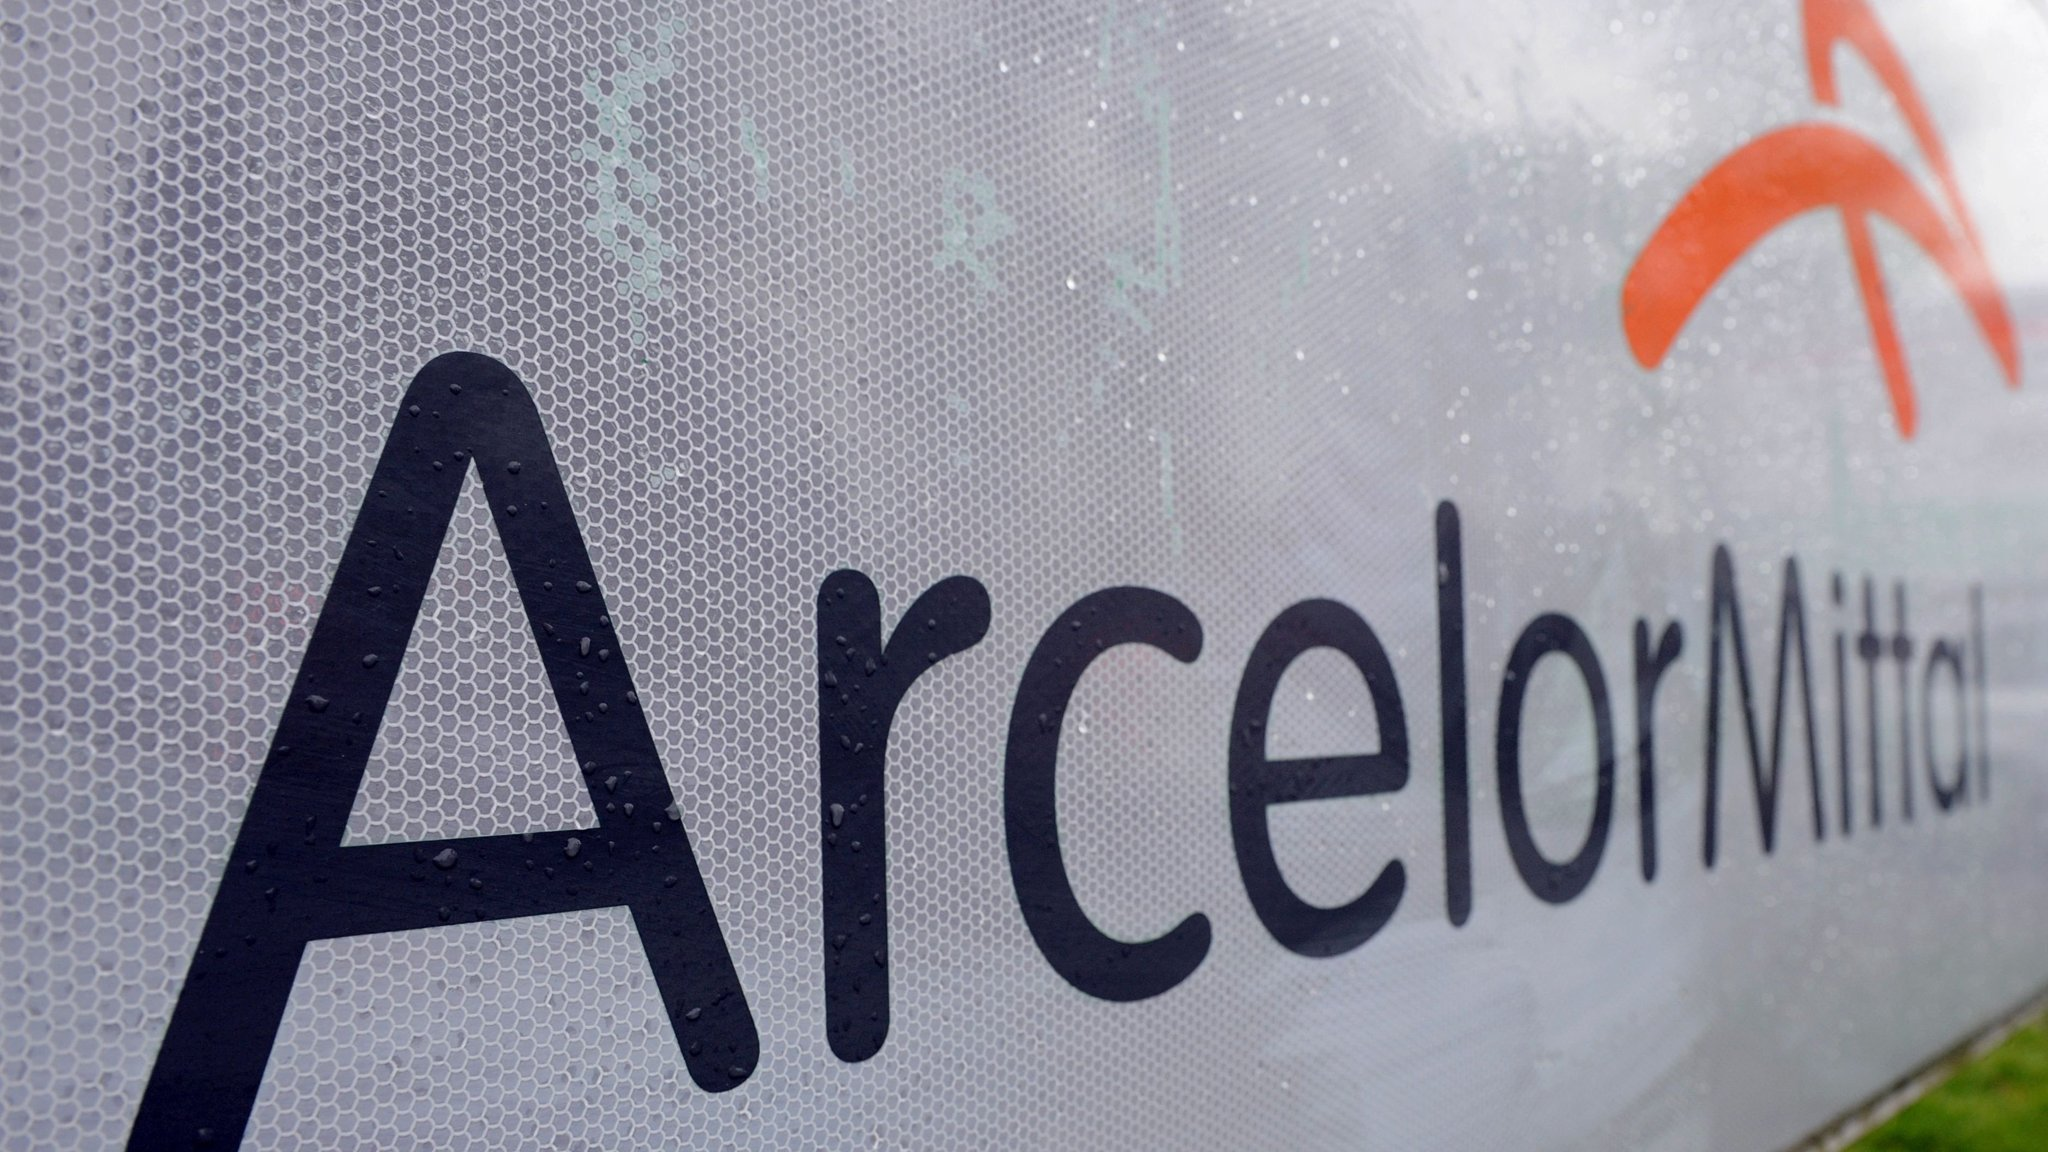 Arcelormittal doubles earnings after cost cutting drive buycottarizona